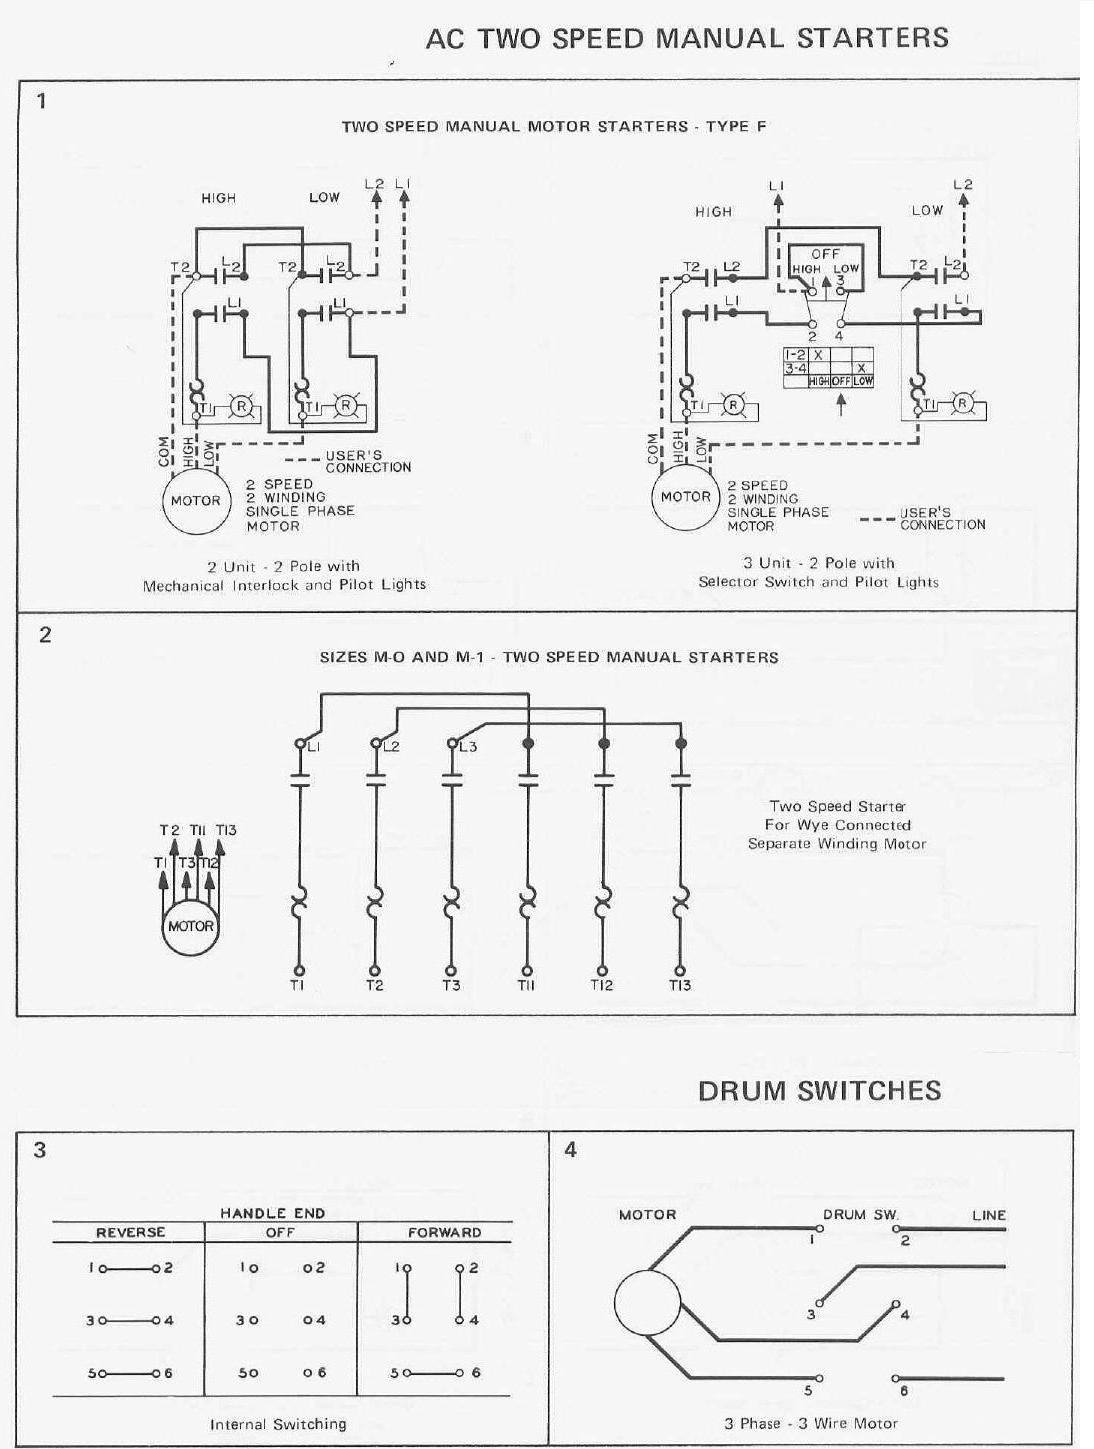 Generous Reversing 3pdt Switch Wiring Diagram Pictures Inspiration ...